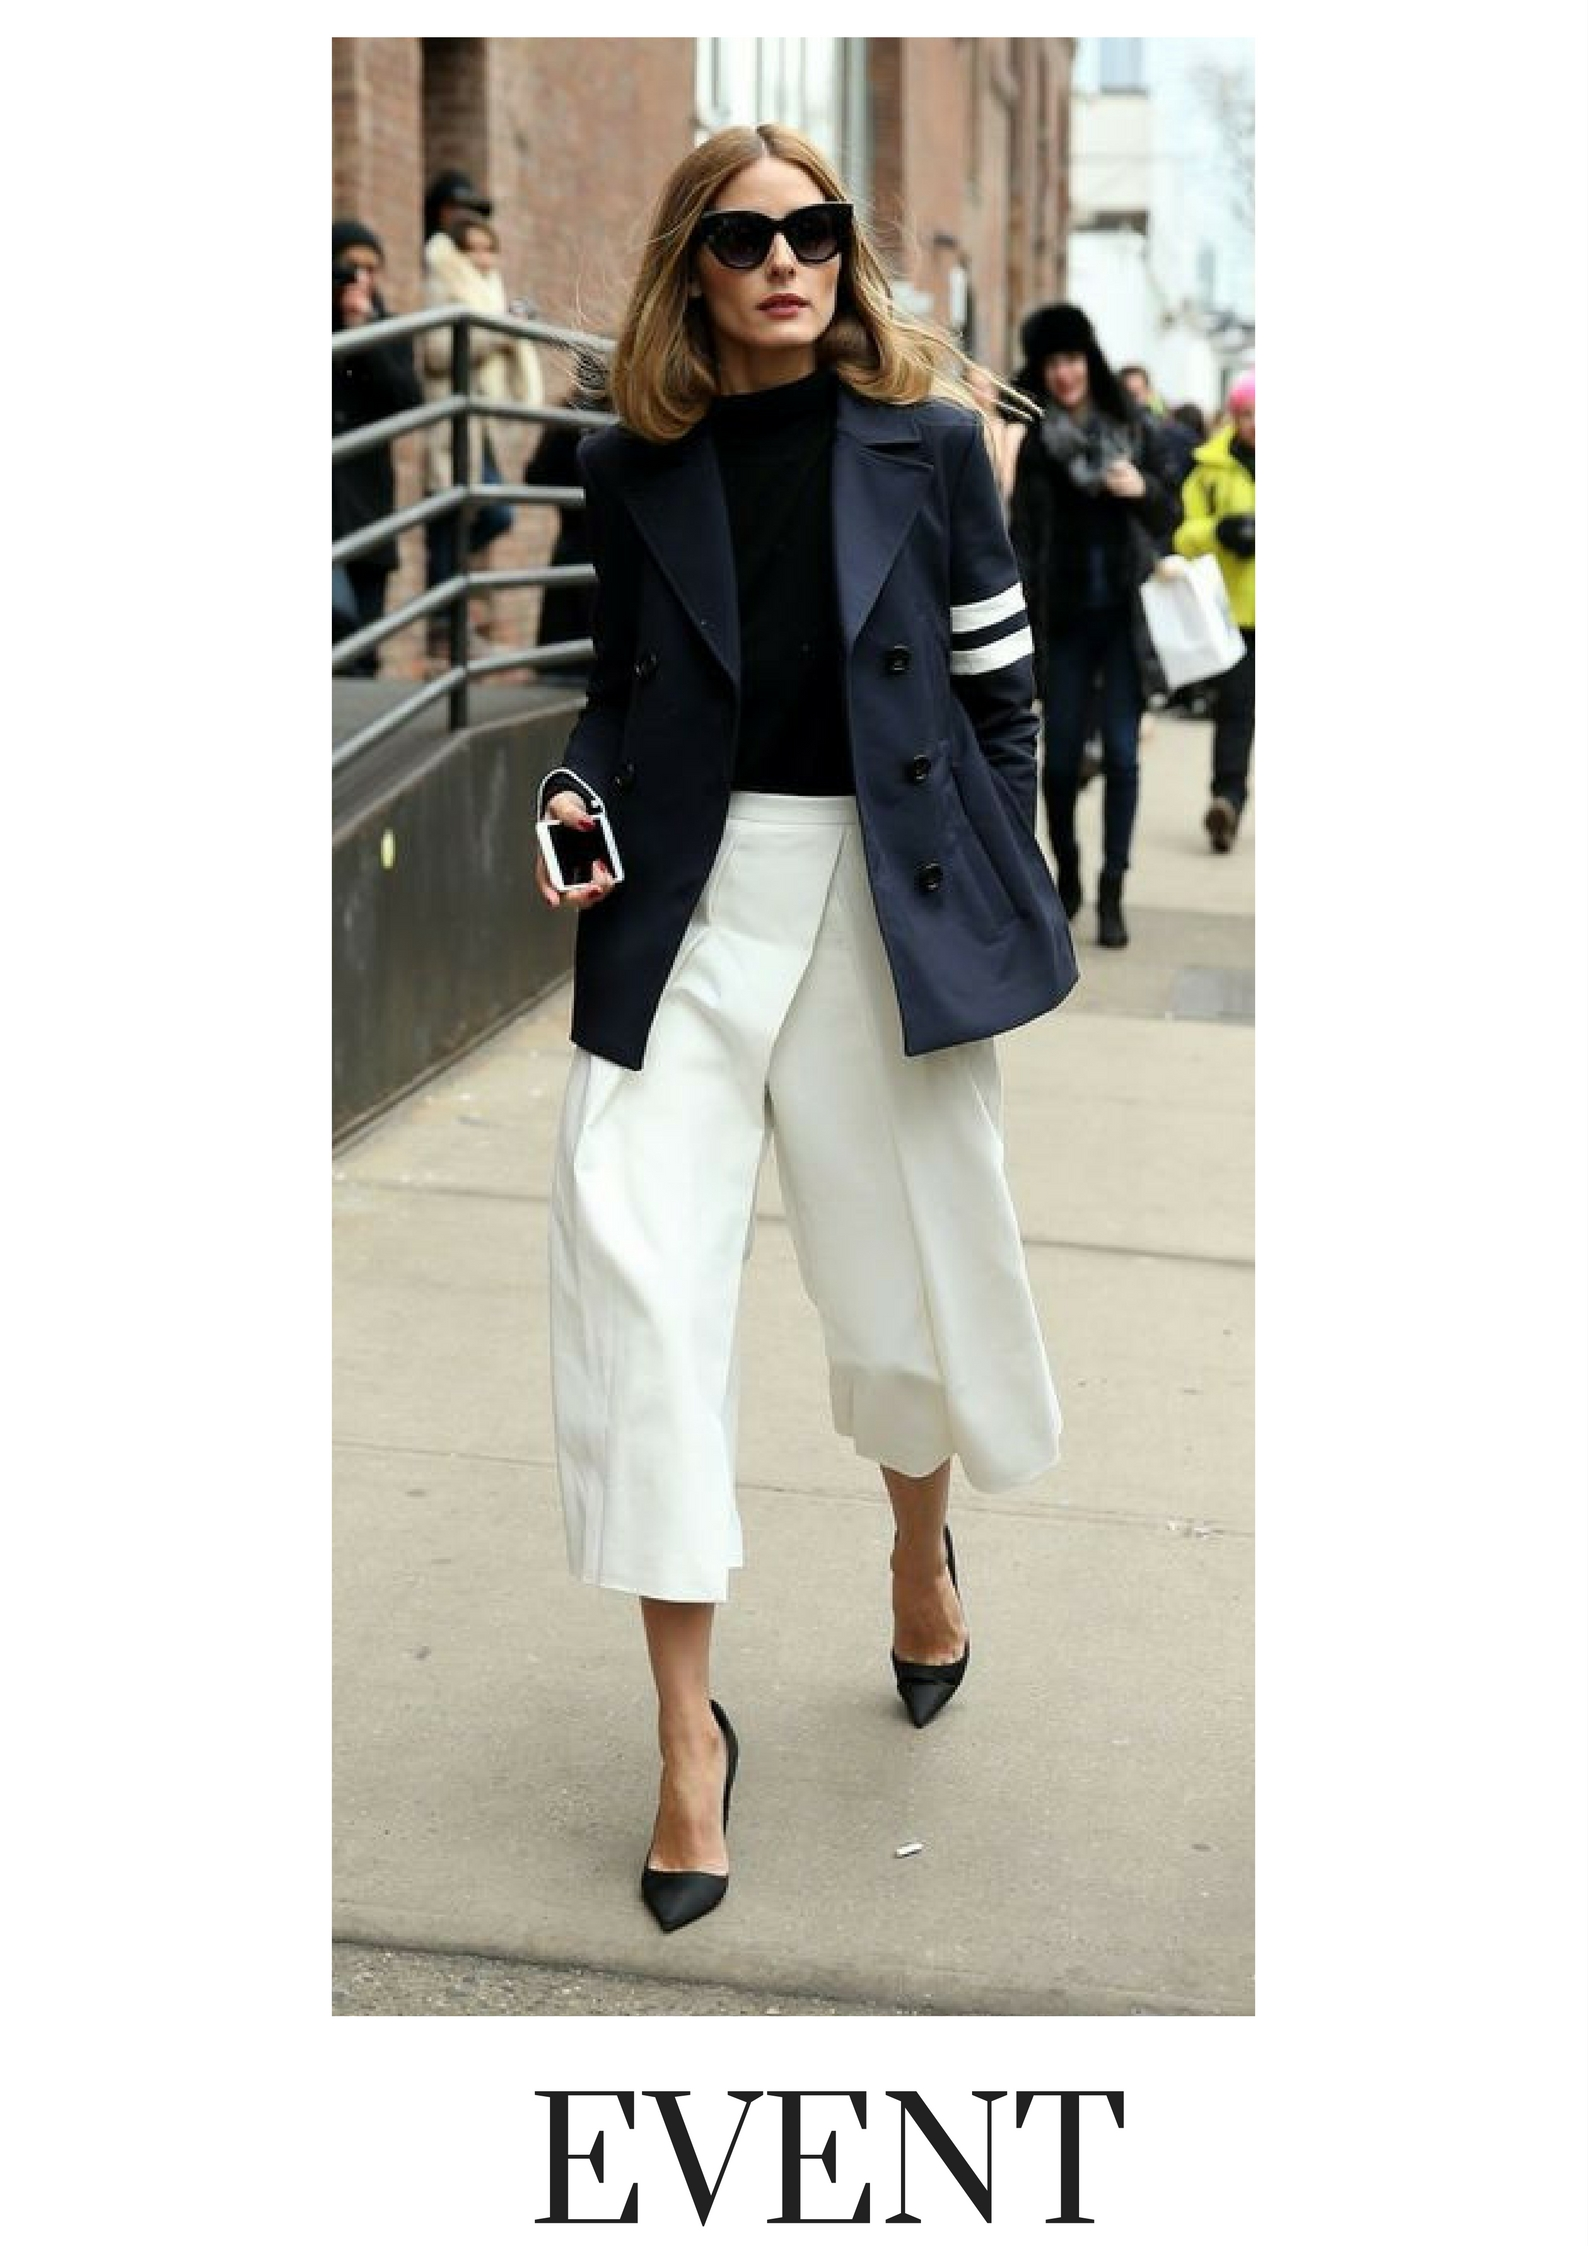 2db24a3e3f7 ... I couldn't put this post together without including one of Olivia  Palermo's many amazing looks. I LOVE her style! If you've been following for  a while ...